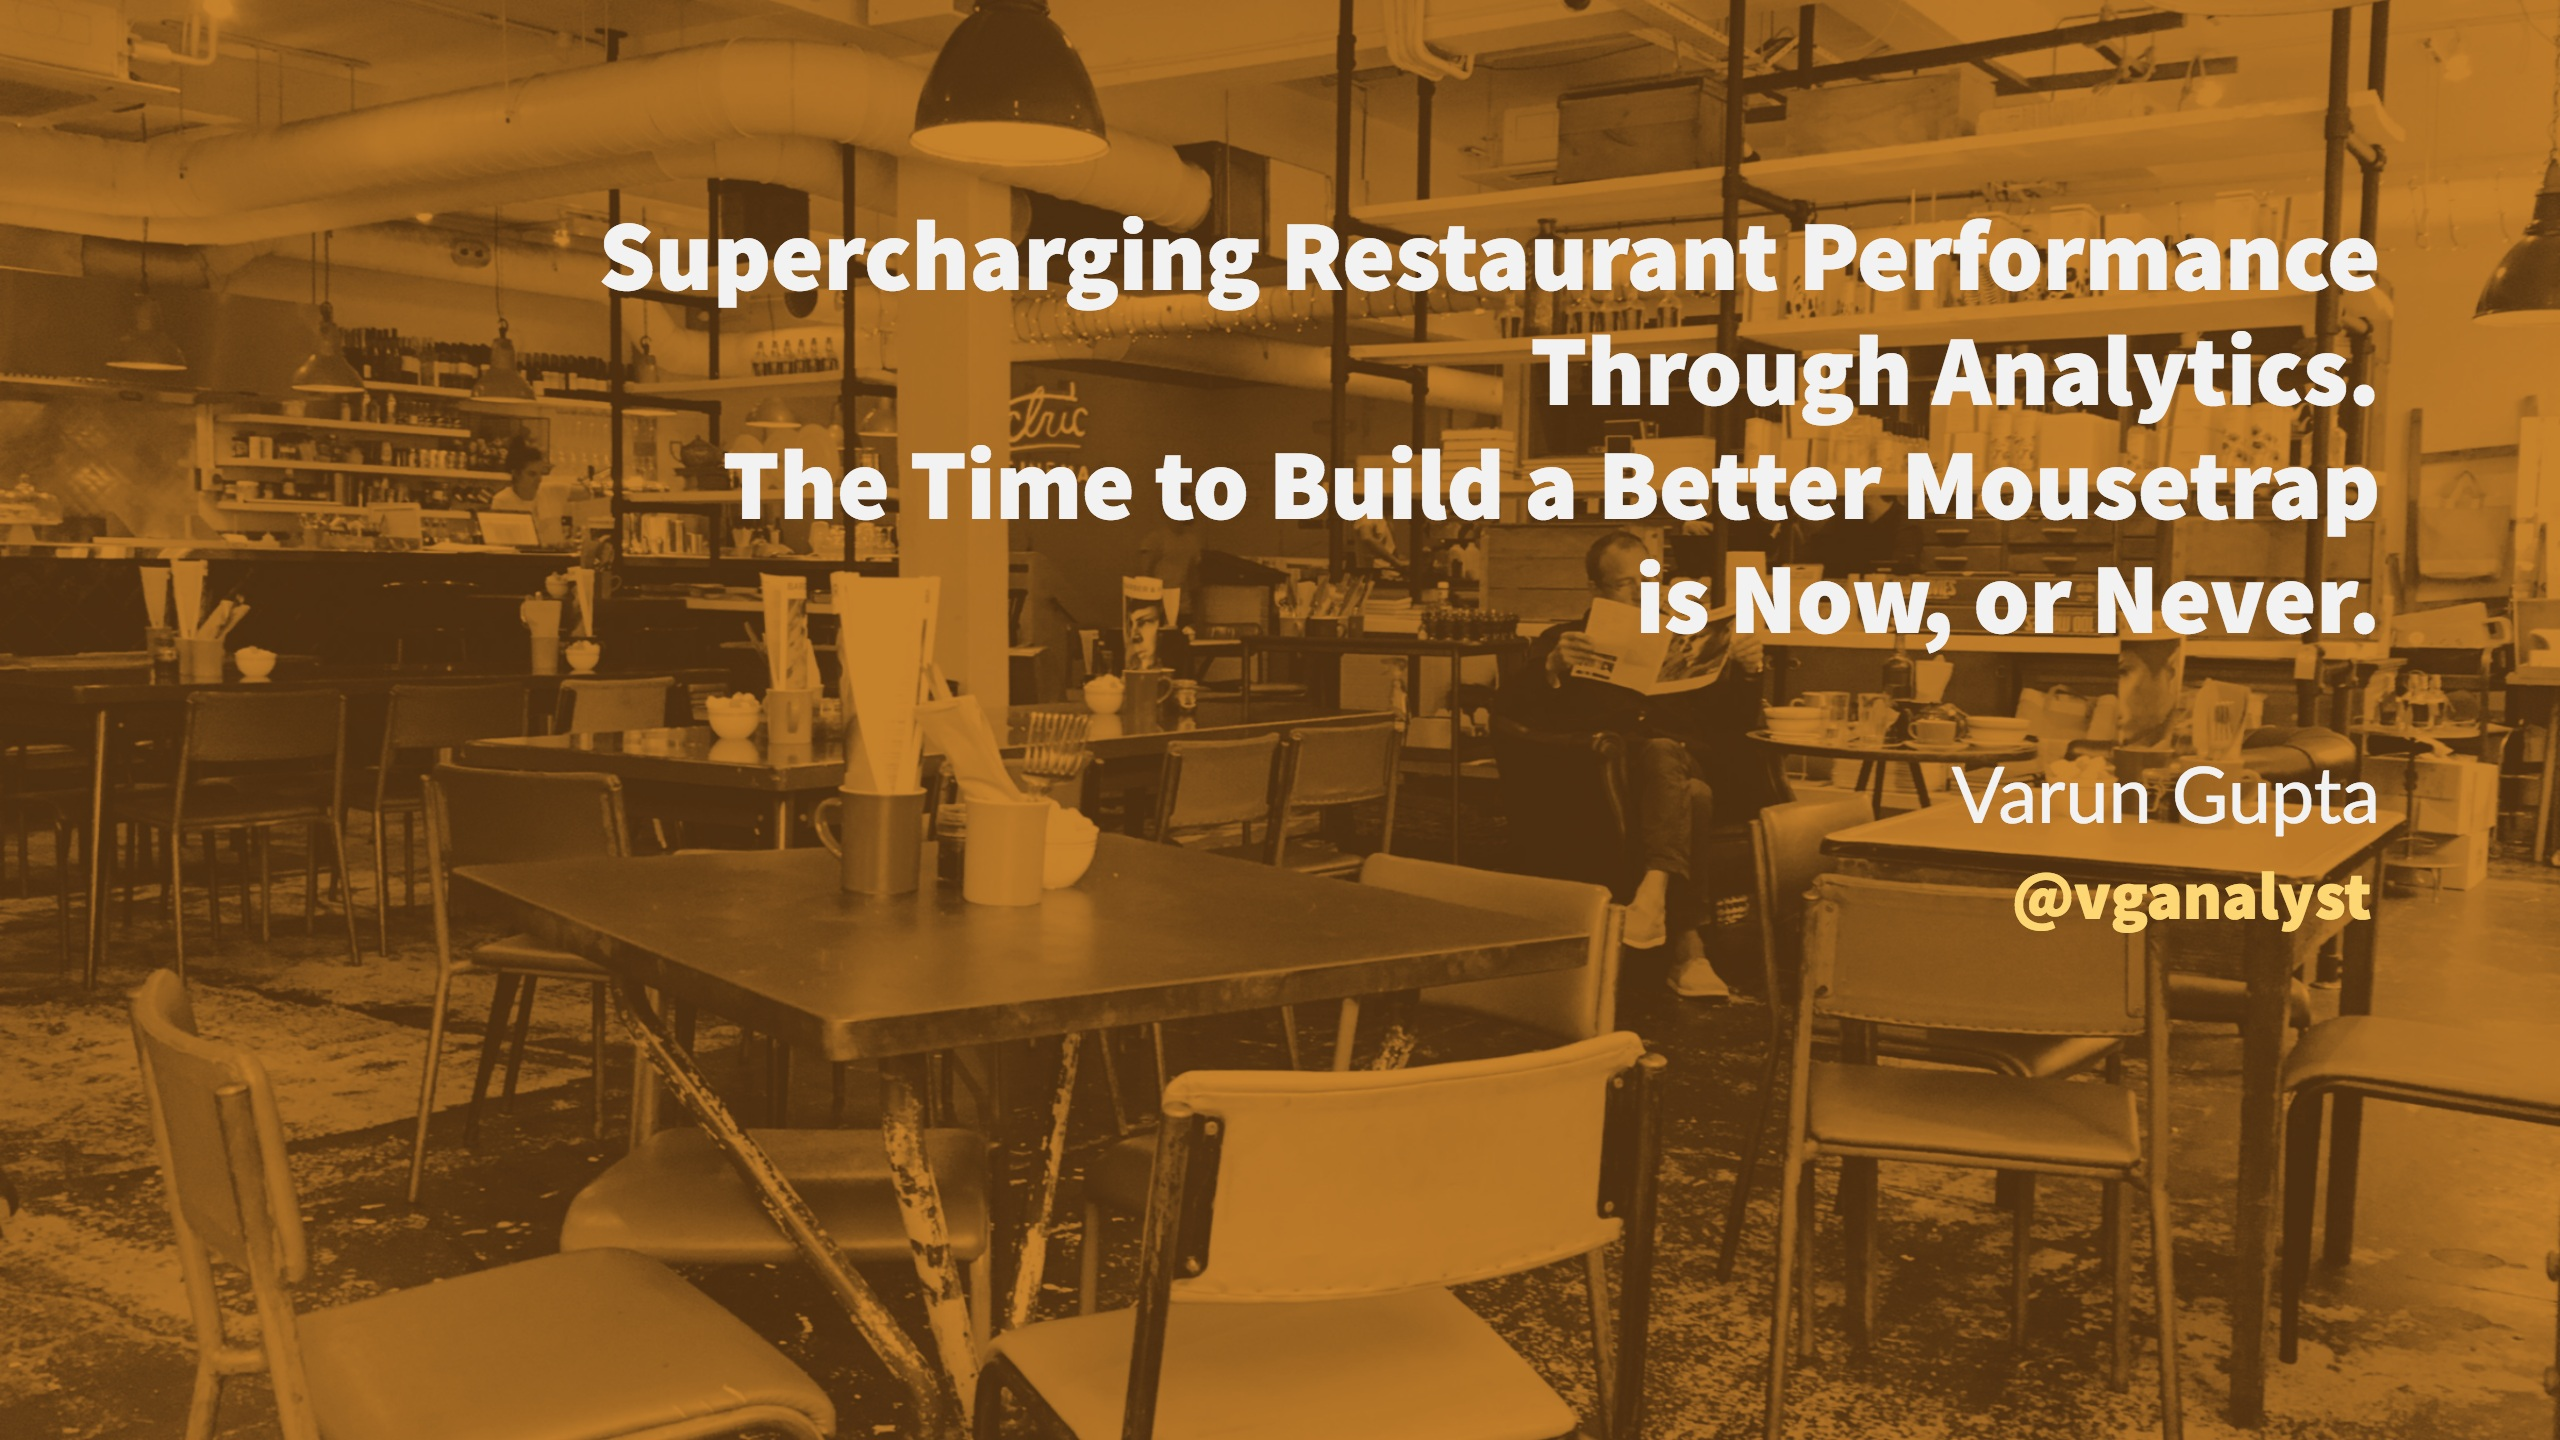 Supercharging Restaurant Performance Through Analytics The time to build a better mousetrap is now, or never.